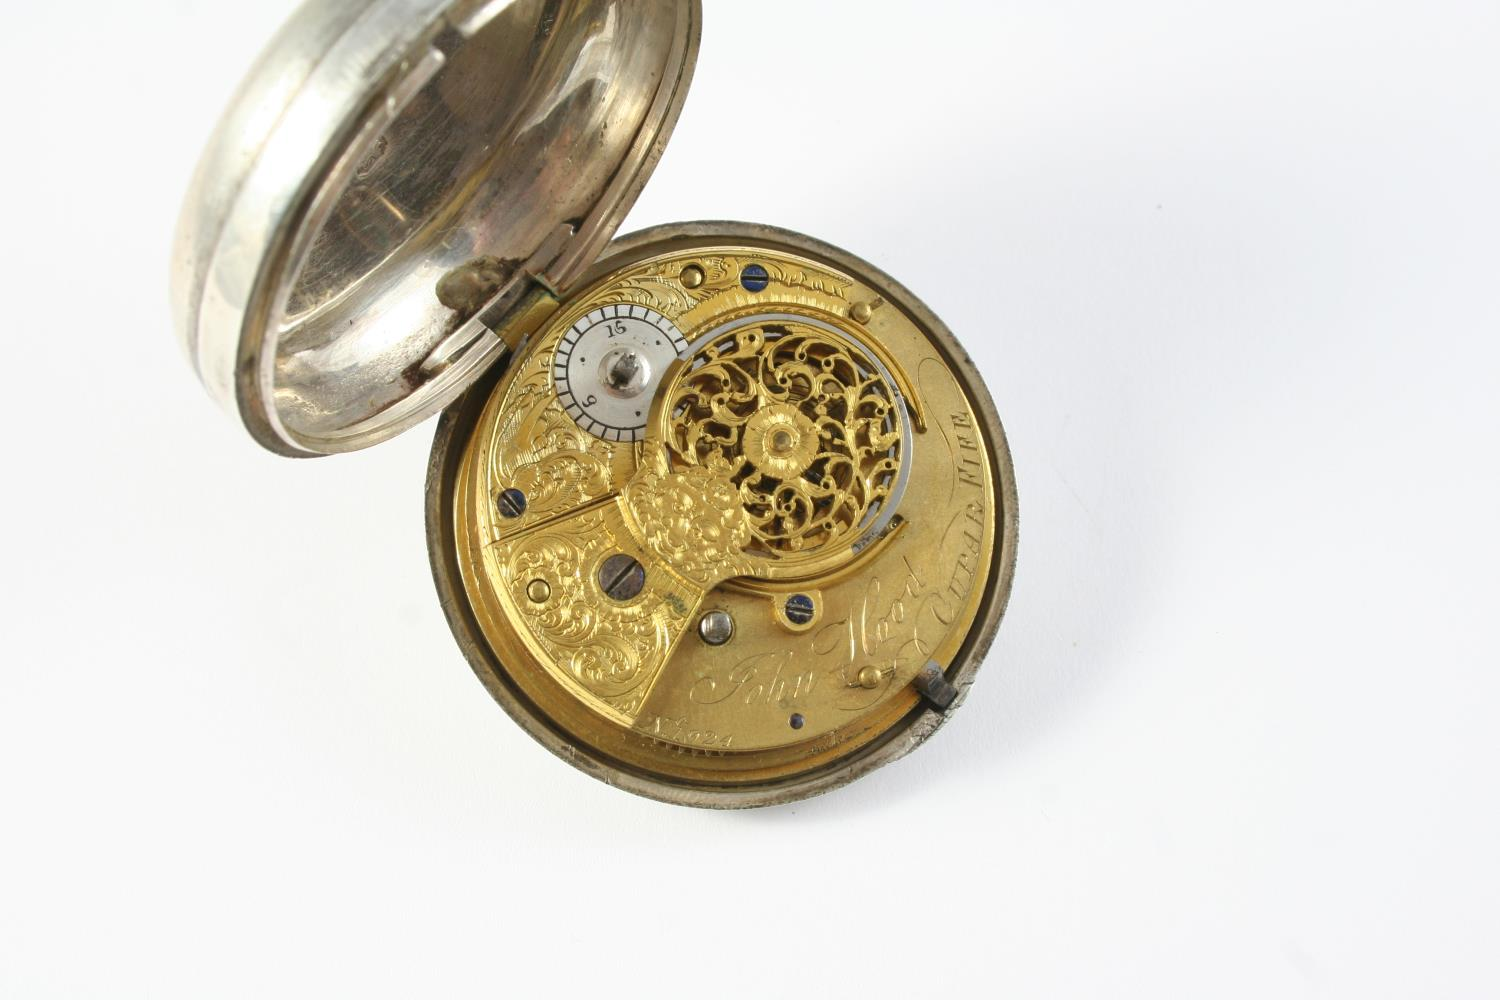 A SILVER PAIR CASED VERGE FUSEE POCKET WATCH the white enamel dial with Roman numerals, the movement - Image 2 of 4